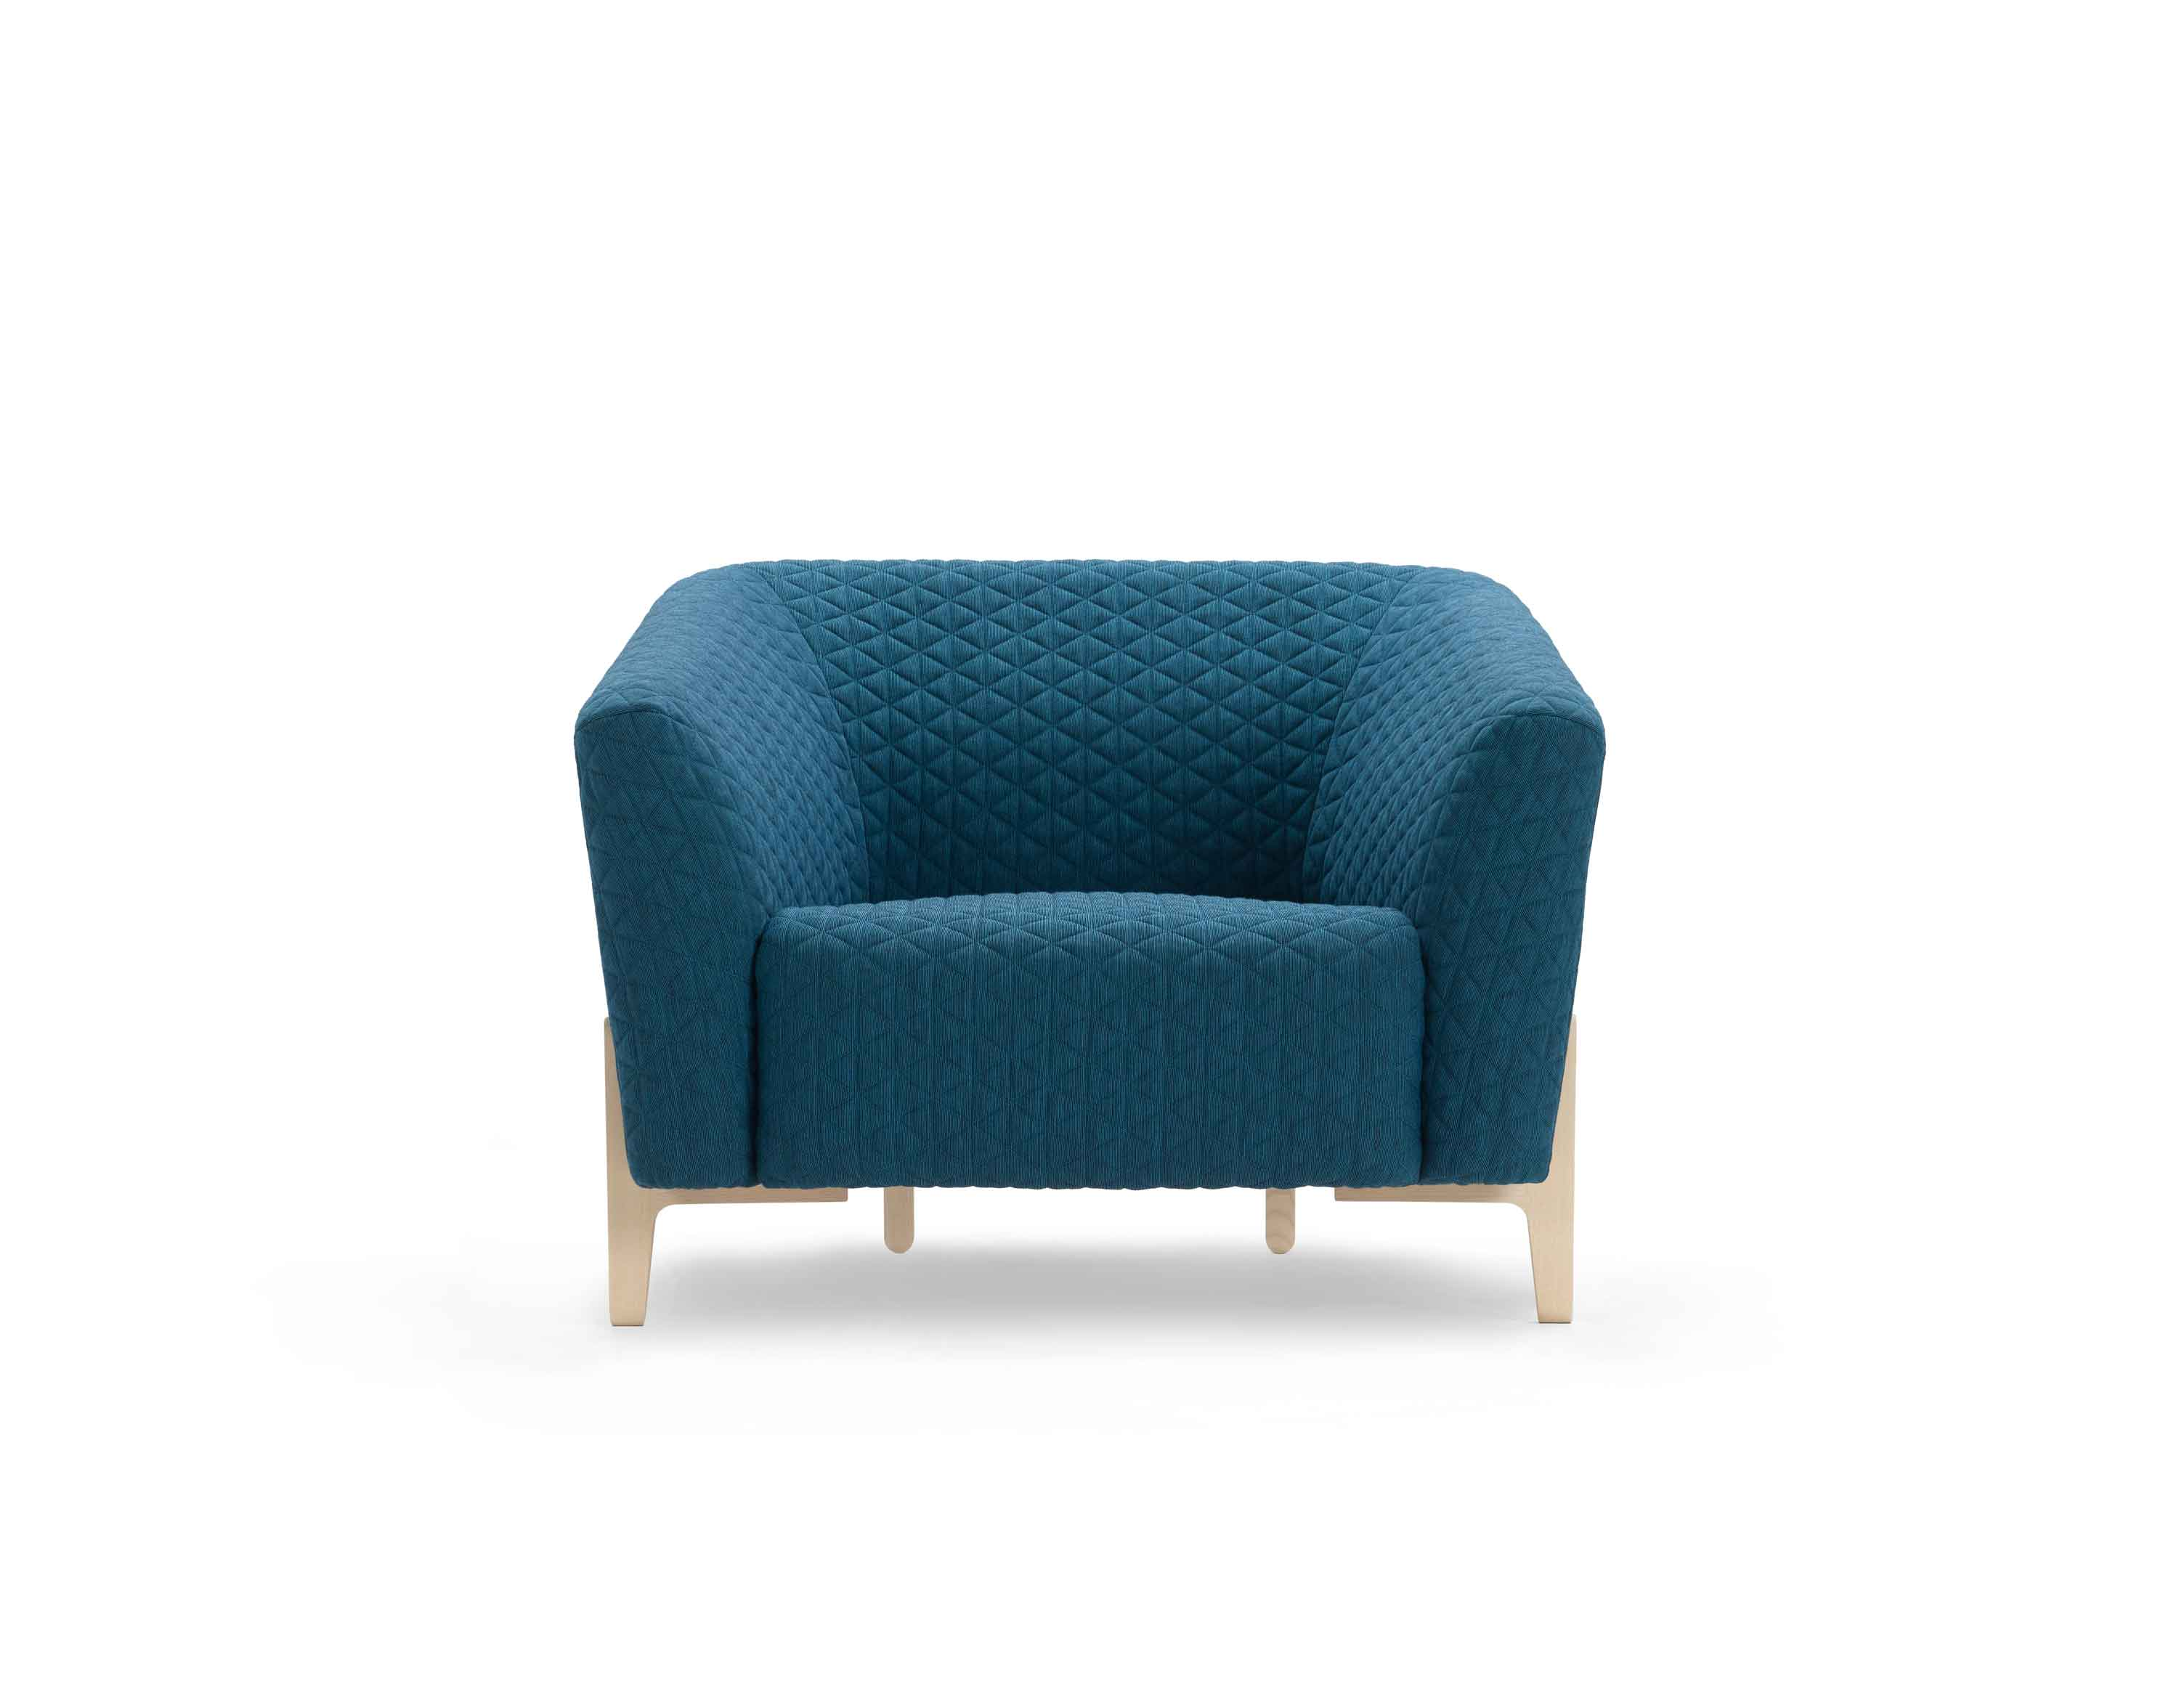 Young-Easy-chairs-Michael-Young-offecct-14308